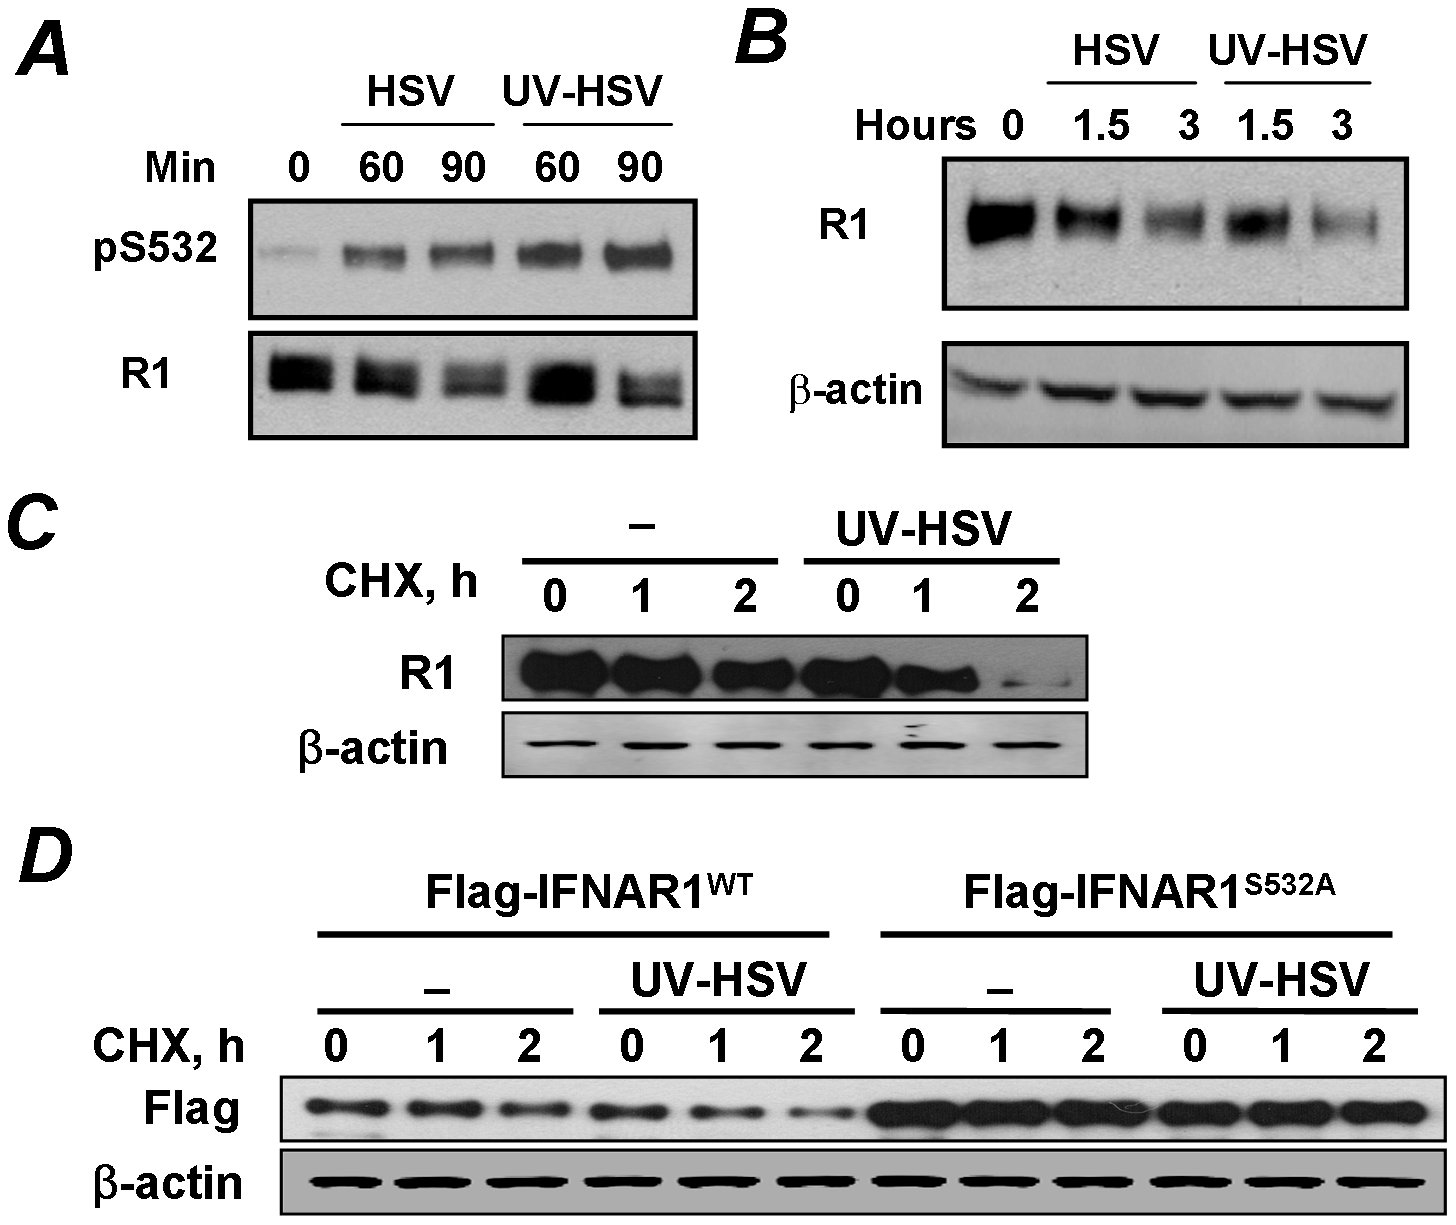 Phosphorylation, downregulation and degradation of IFNAR1 can be stimulated by inactivated HSV.